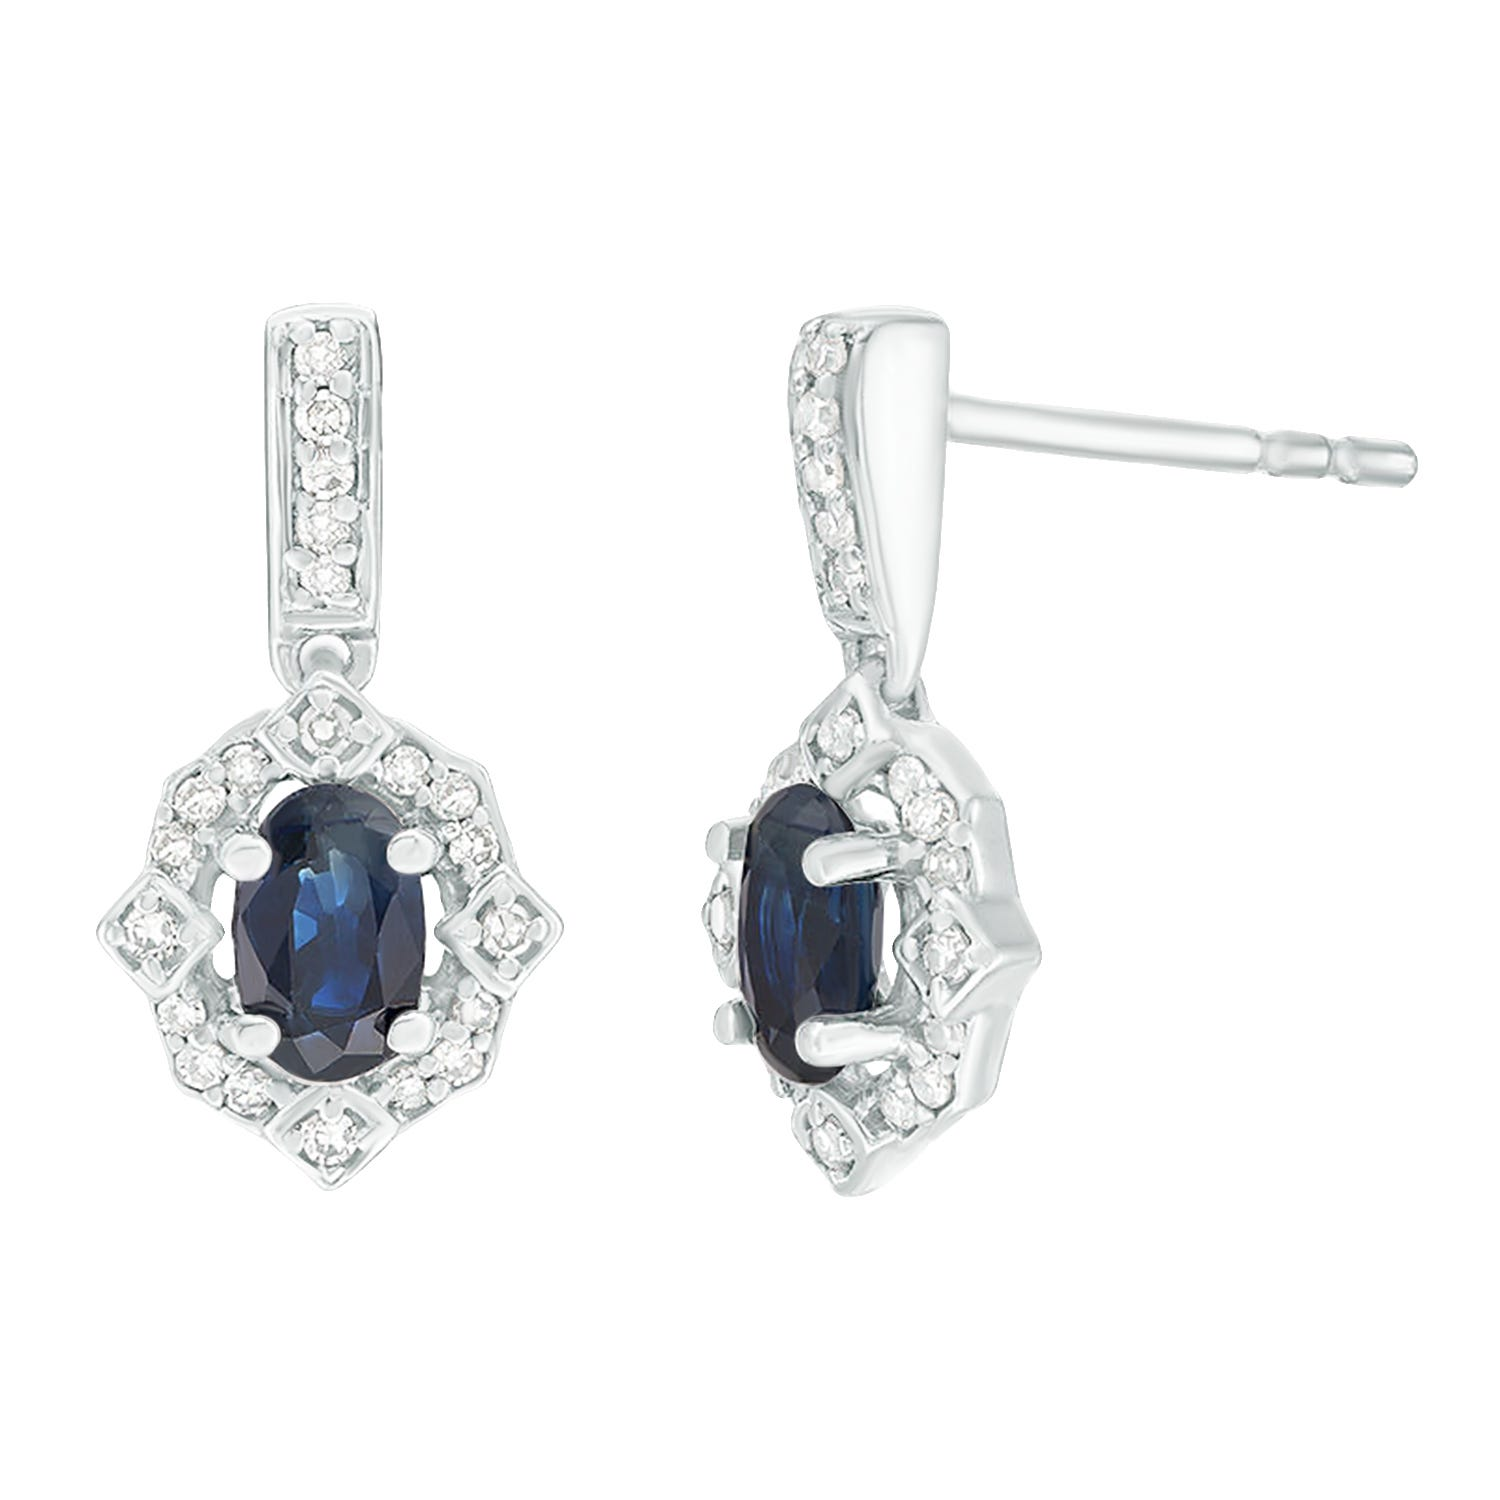 Oval Sapphire & Diamond Earrings in 10k White Gold